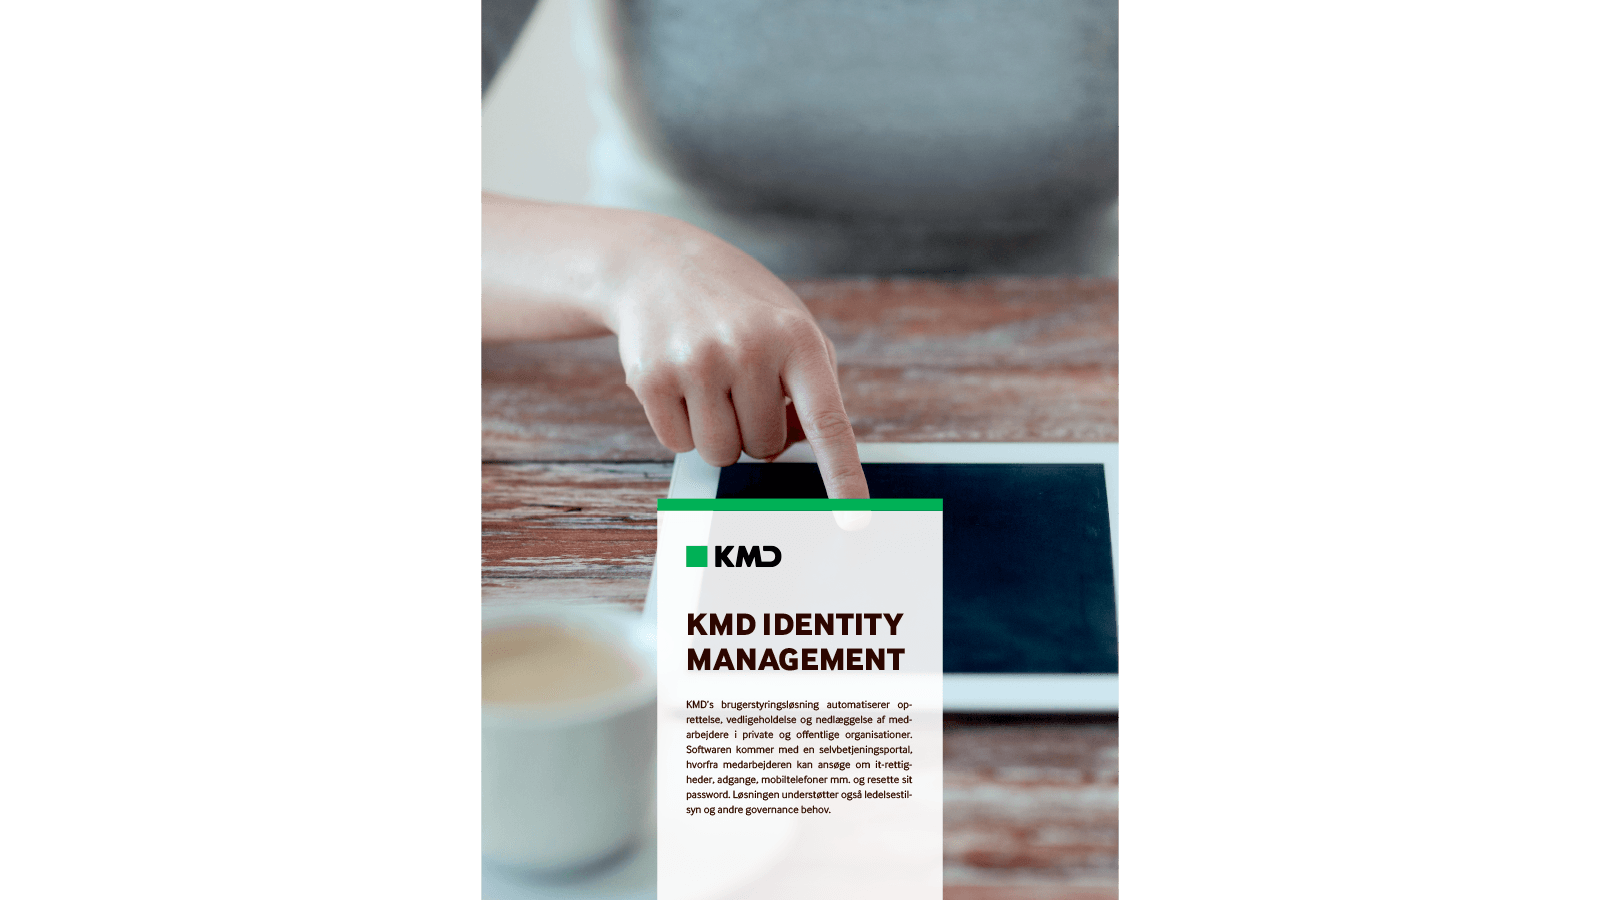 KMD Identity Management brochure